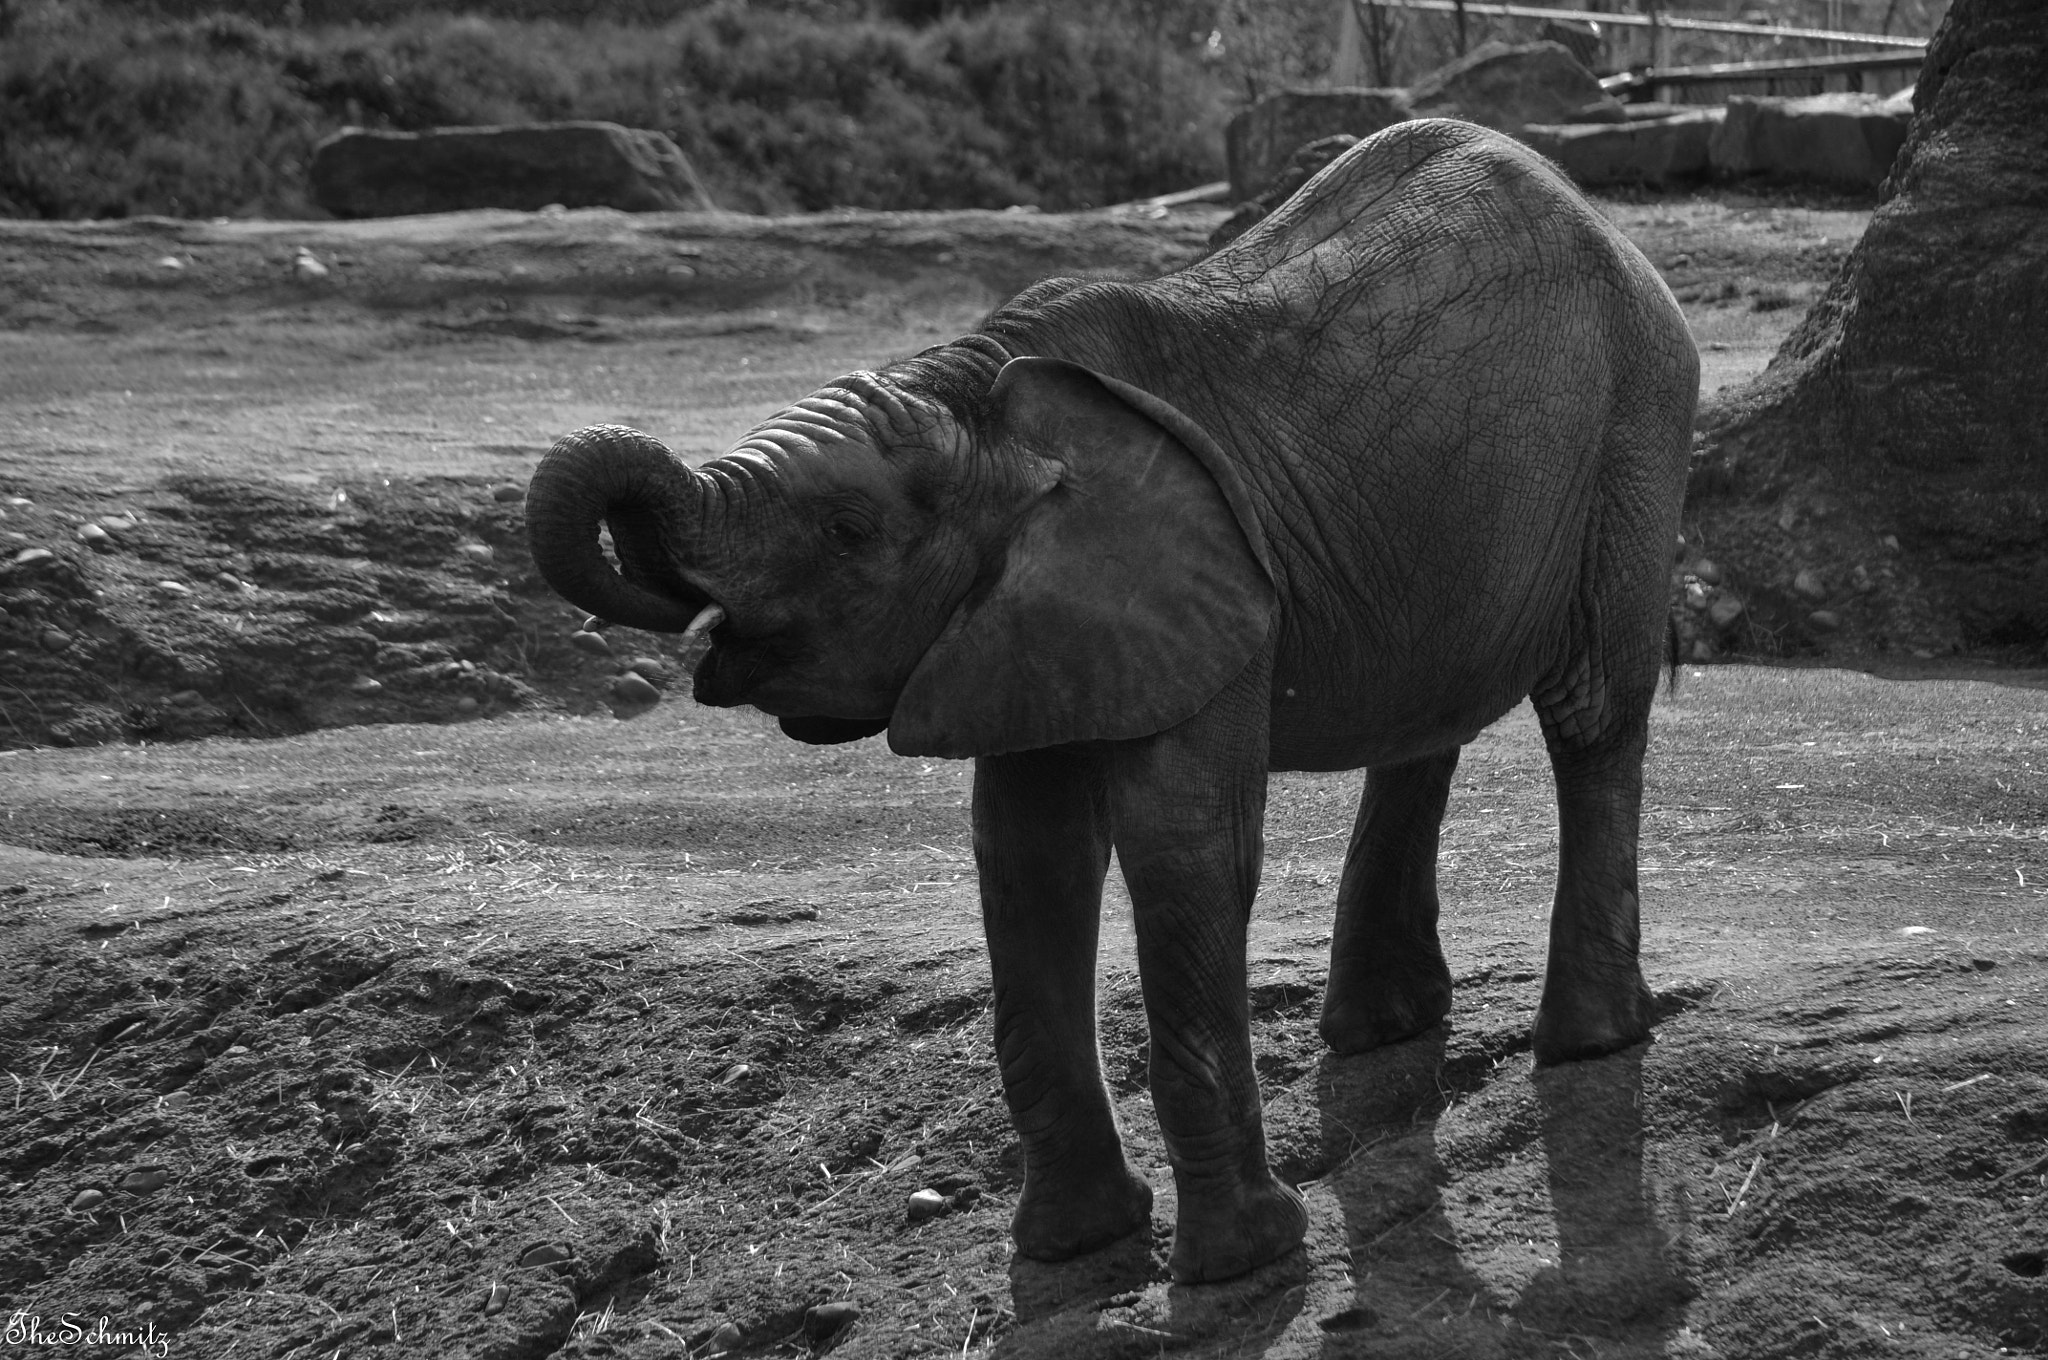 Photograph Baby Elephant by The Schmitz on 500px